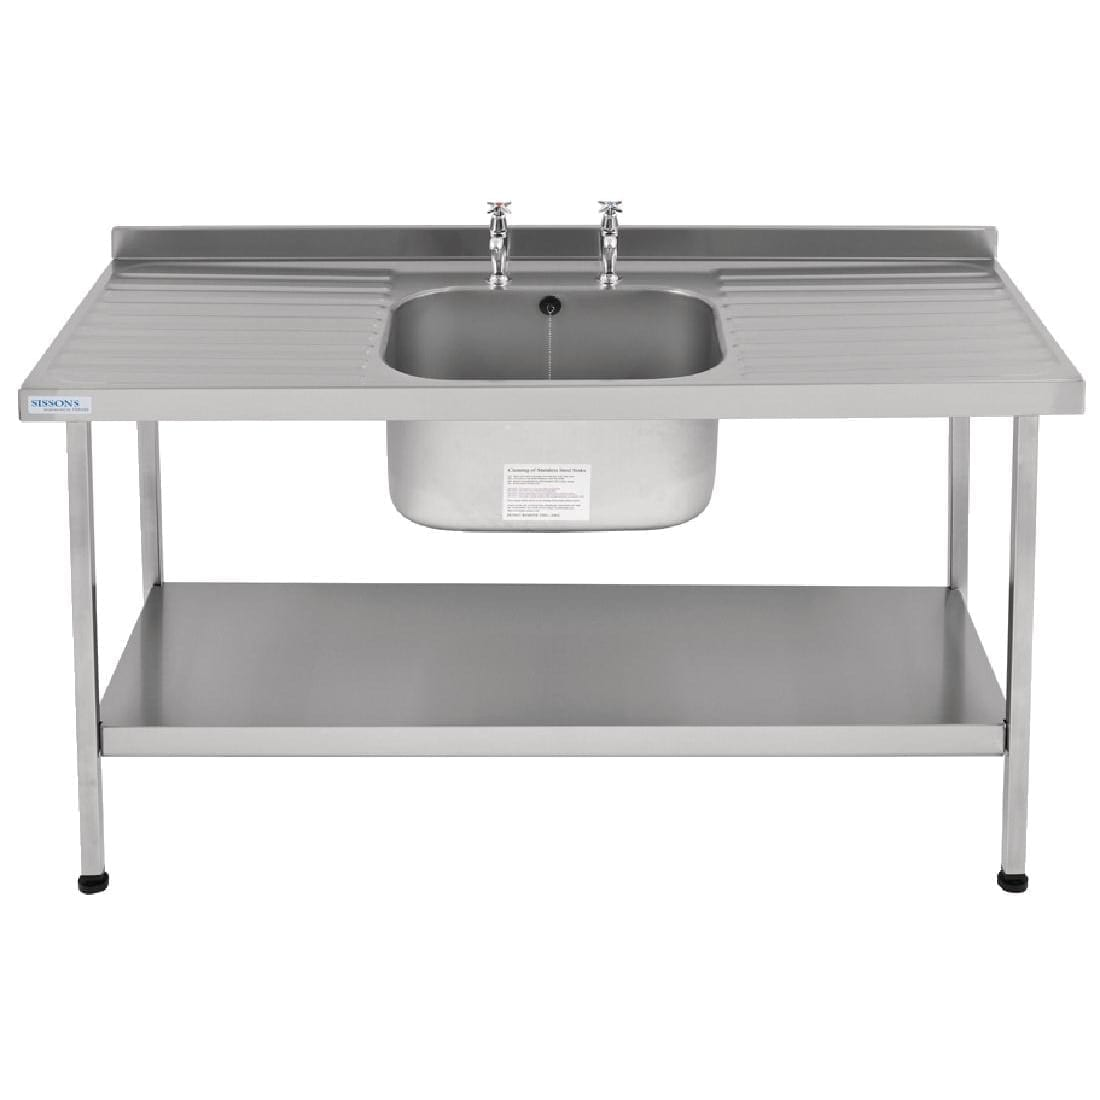 Sissons Centre Bowl inc taps & Double Drainer Midi Range St/St - 1800mm (Direct)-0